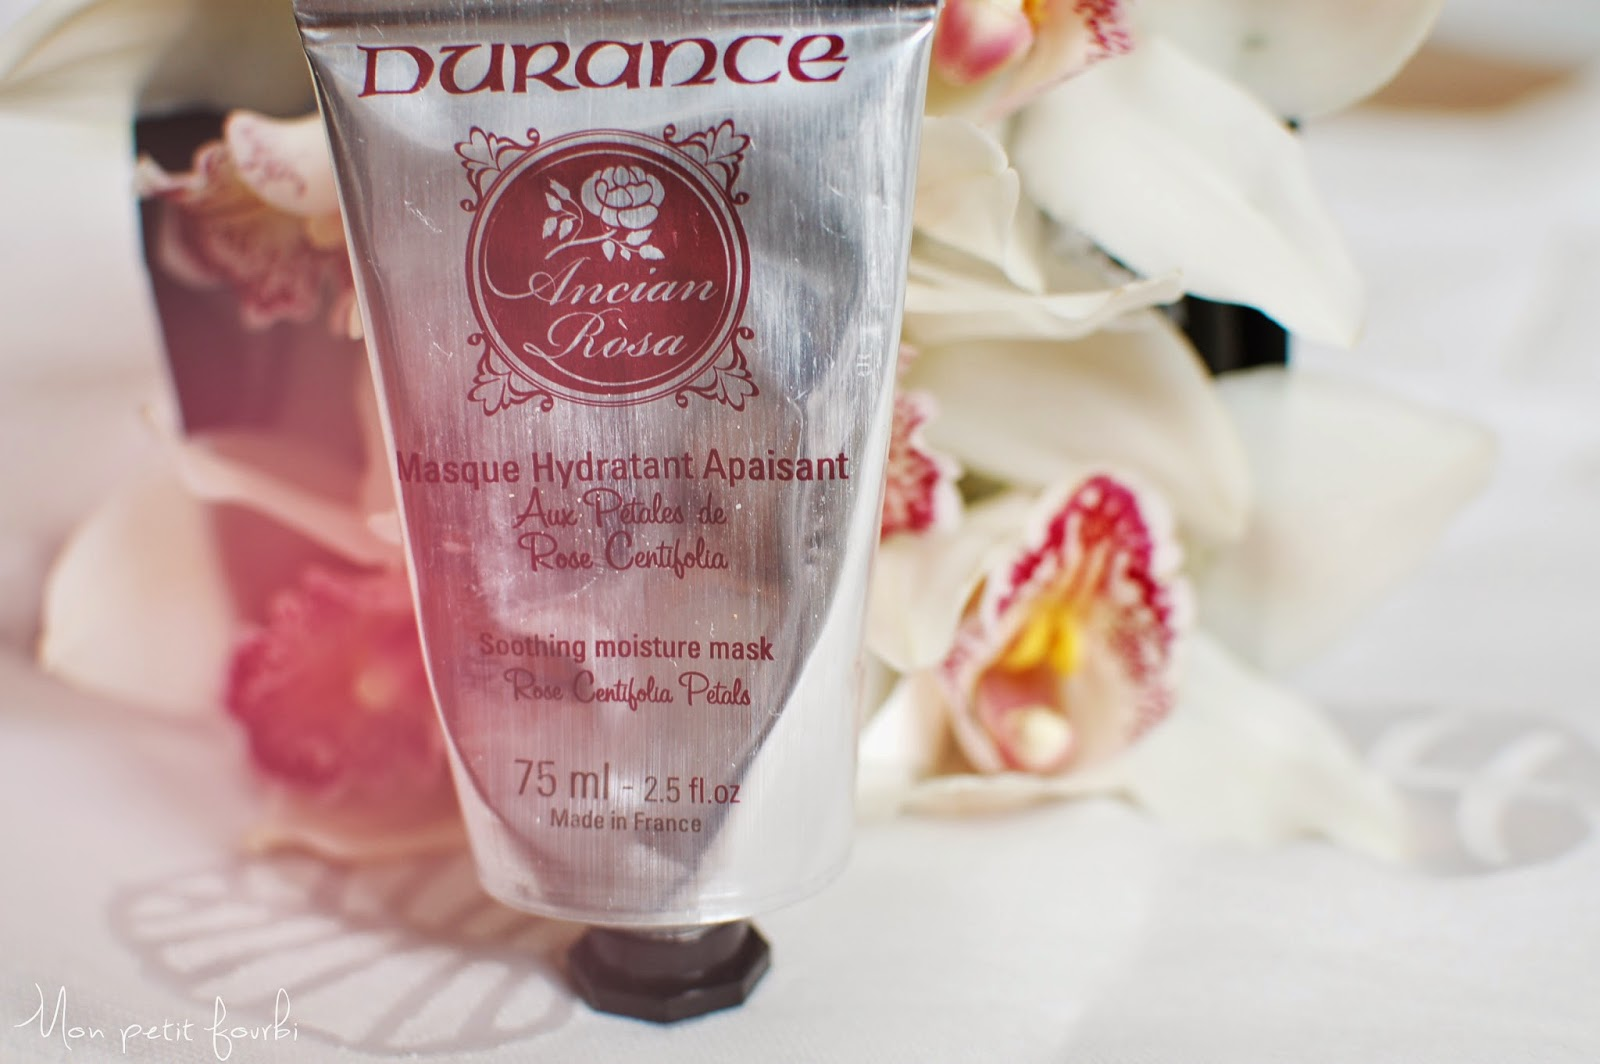 Masque hydratant Durance Gamme Ancian Rosa